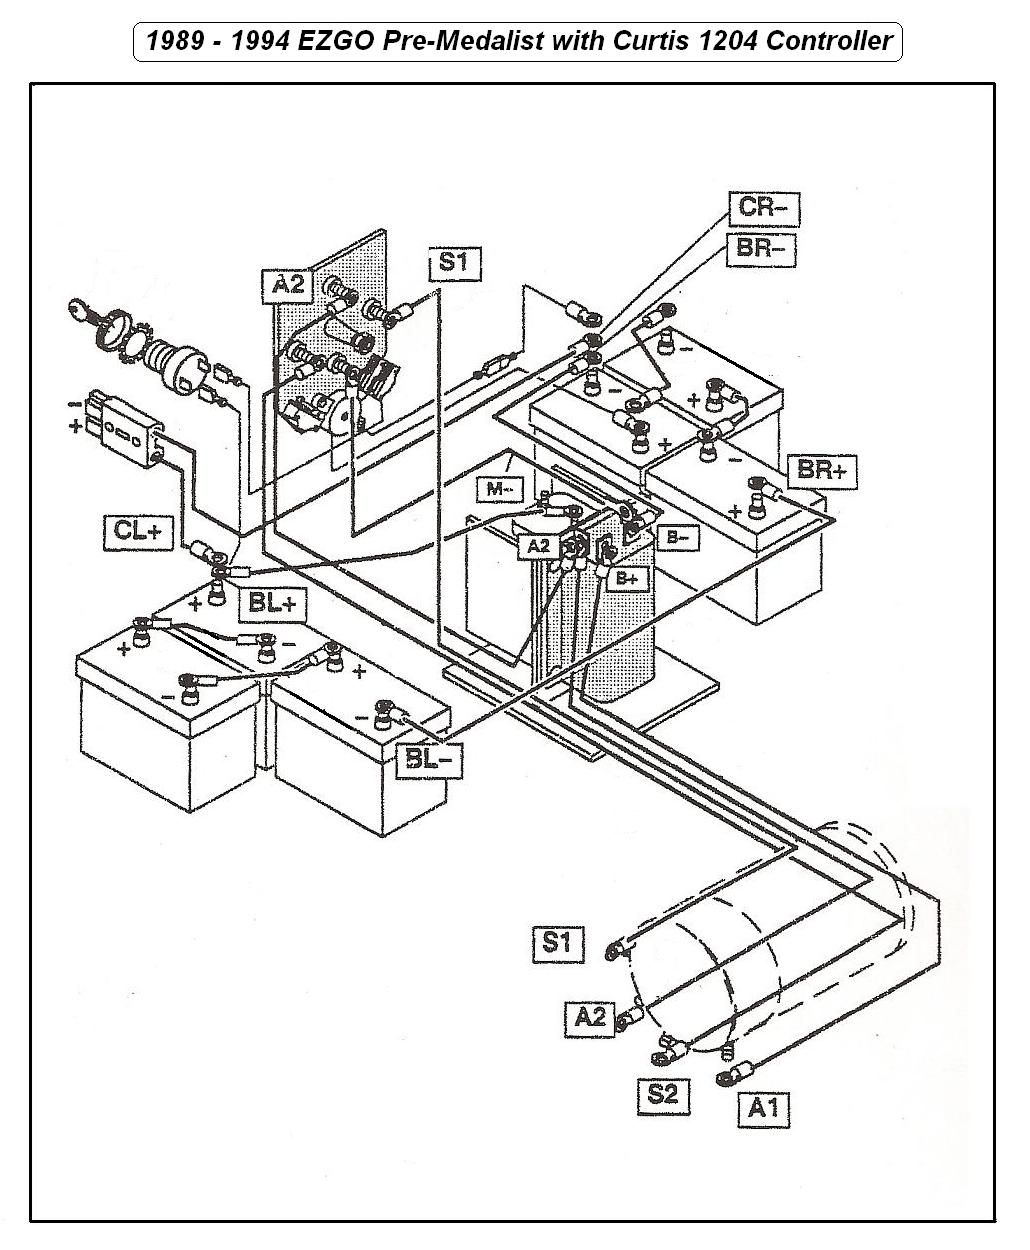 A89_94EZ_Wiring 1989 ez go wiring diagram 1989 eldorado wiring diagram \u2022 wiring ez go electric golf cart wiring diagram at aneh.co